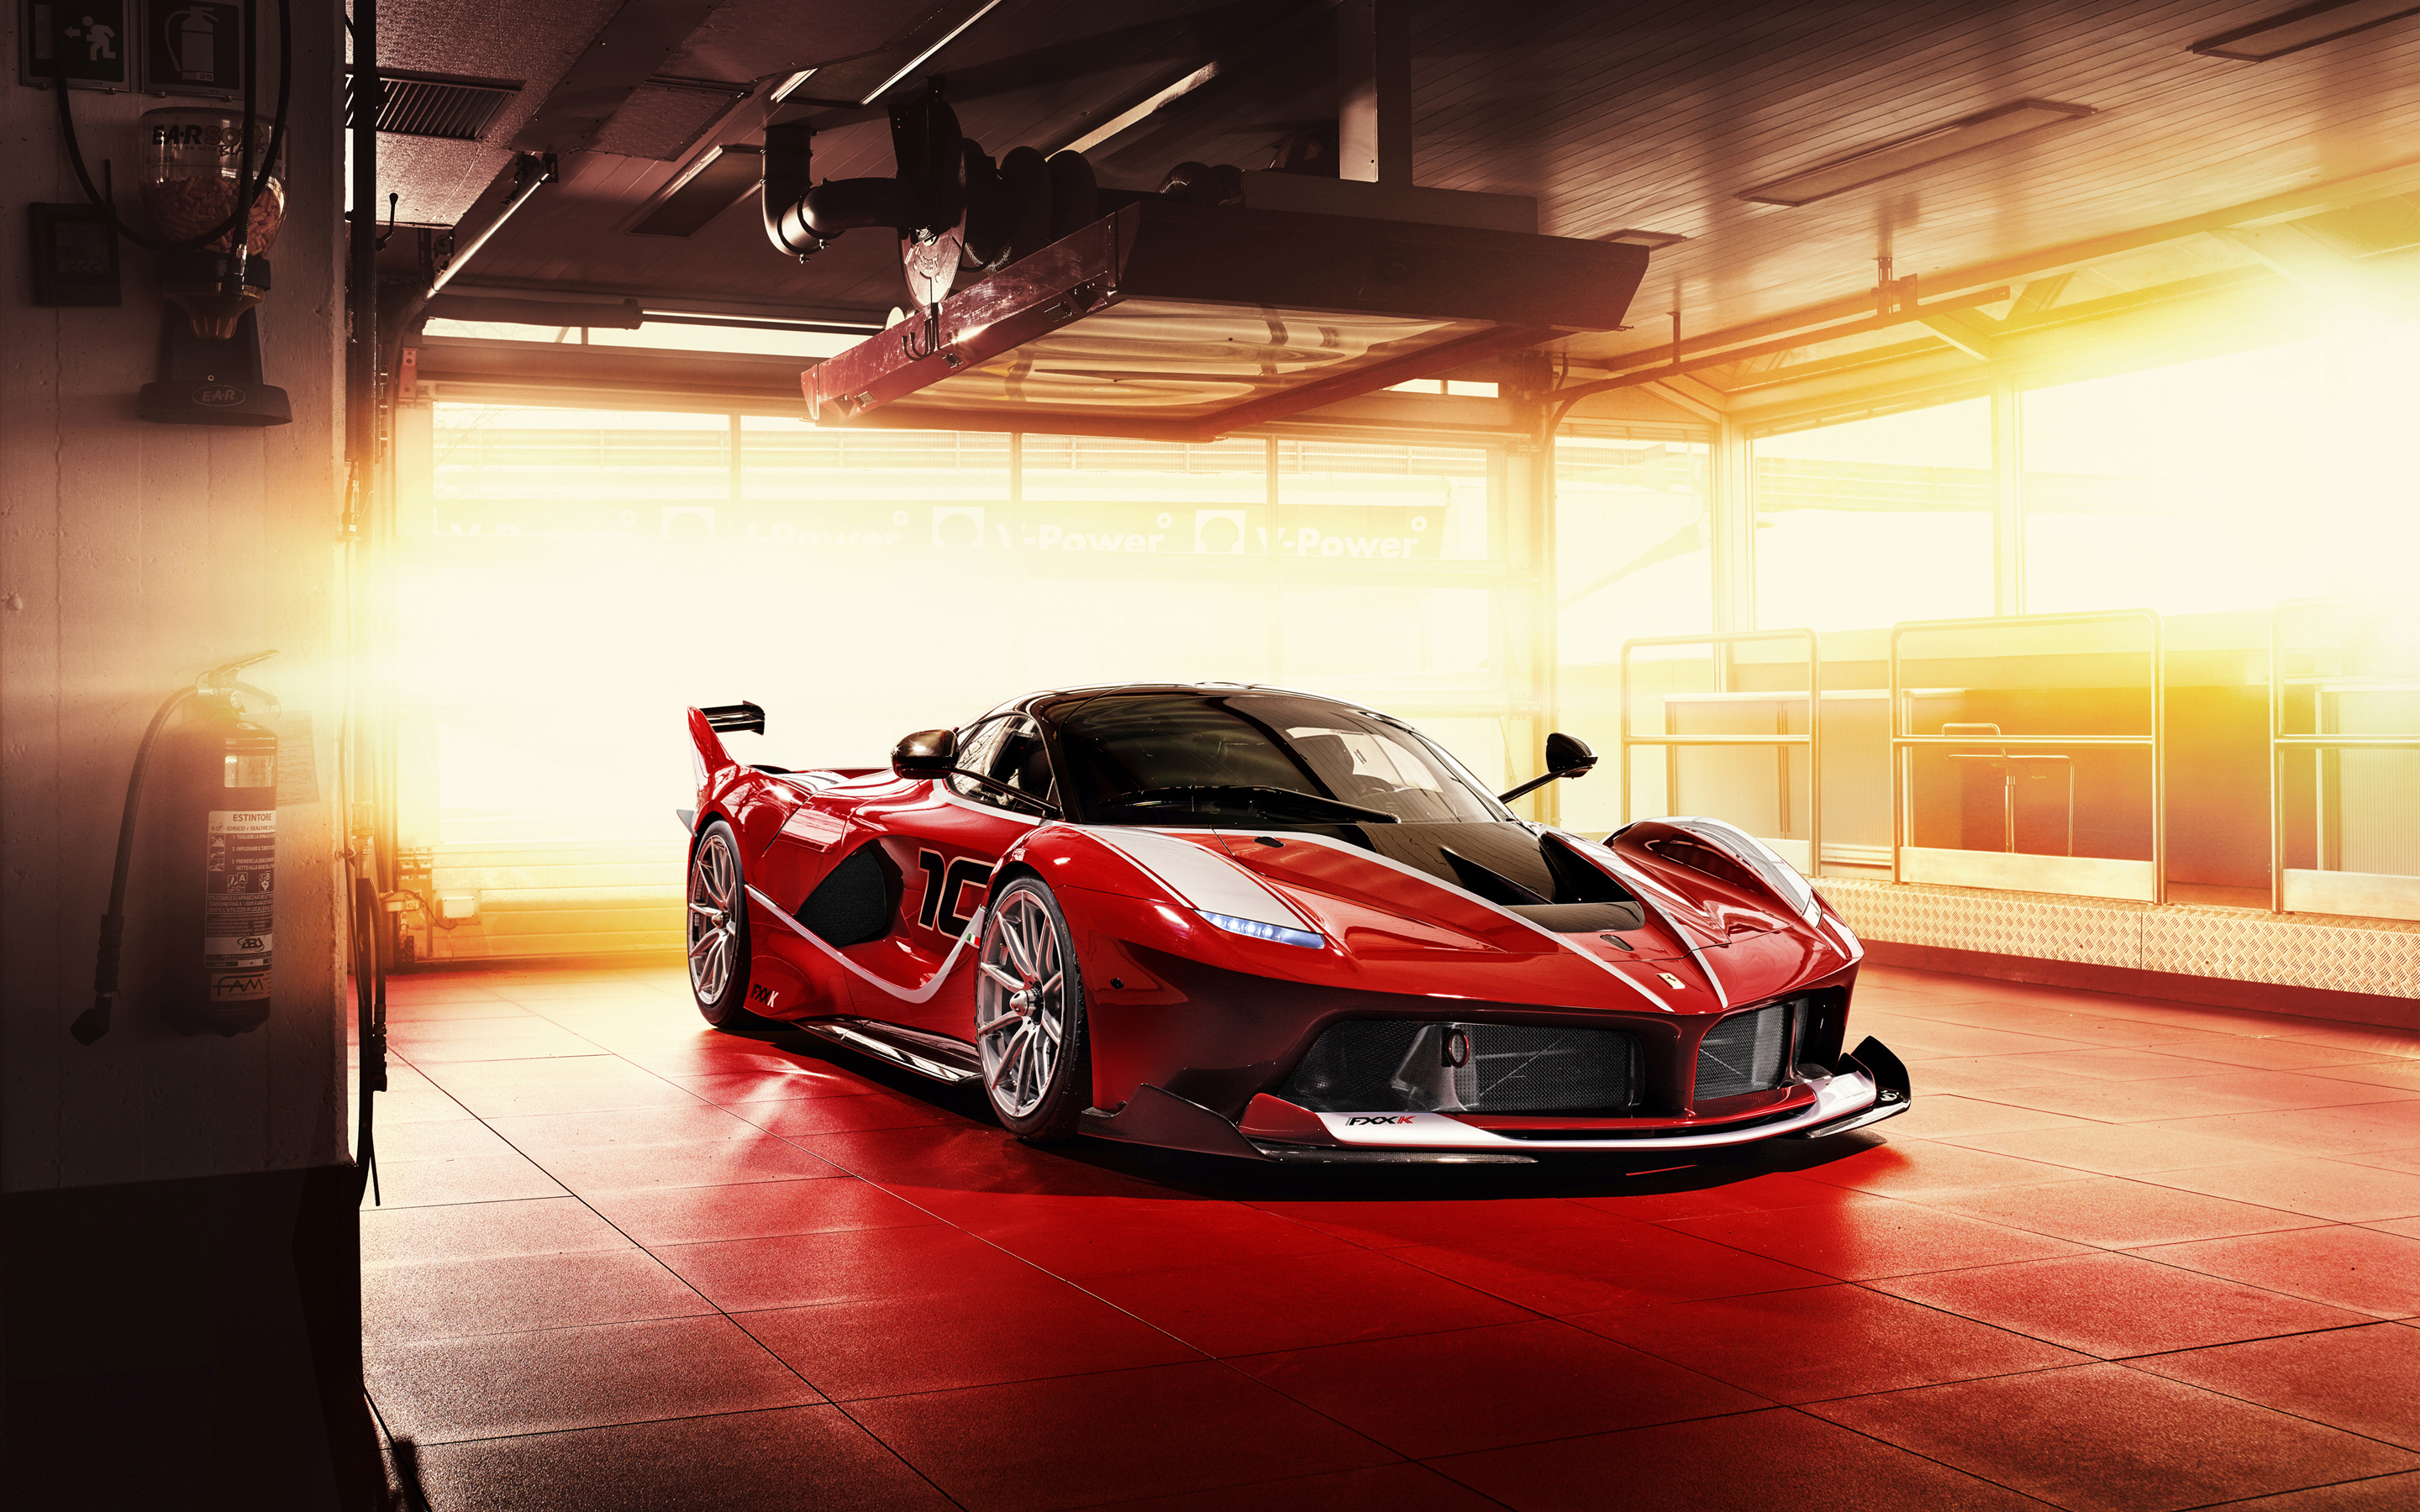 Ferrari FXX K 2015 wallpaper